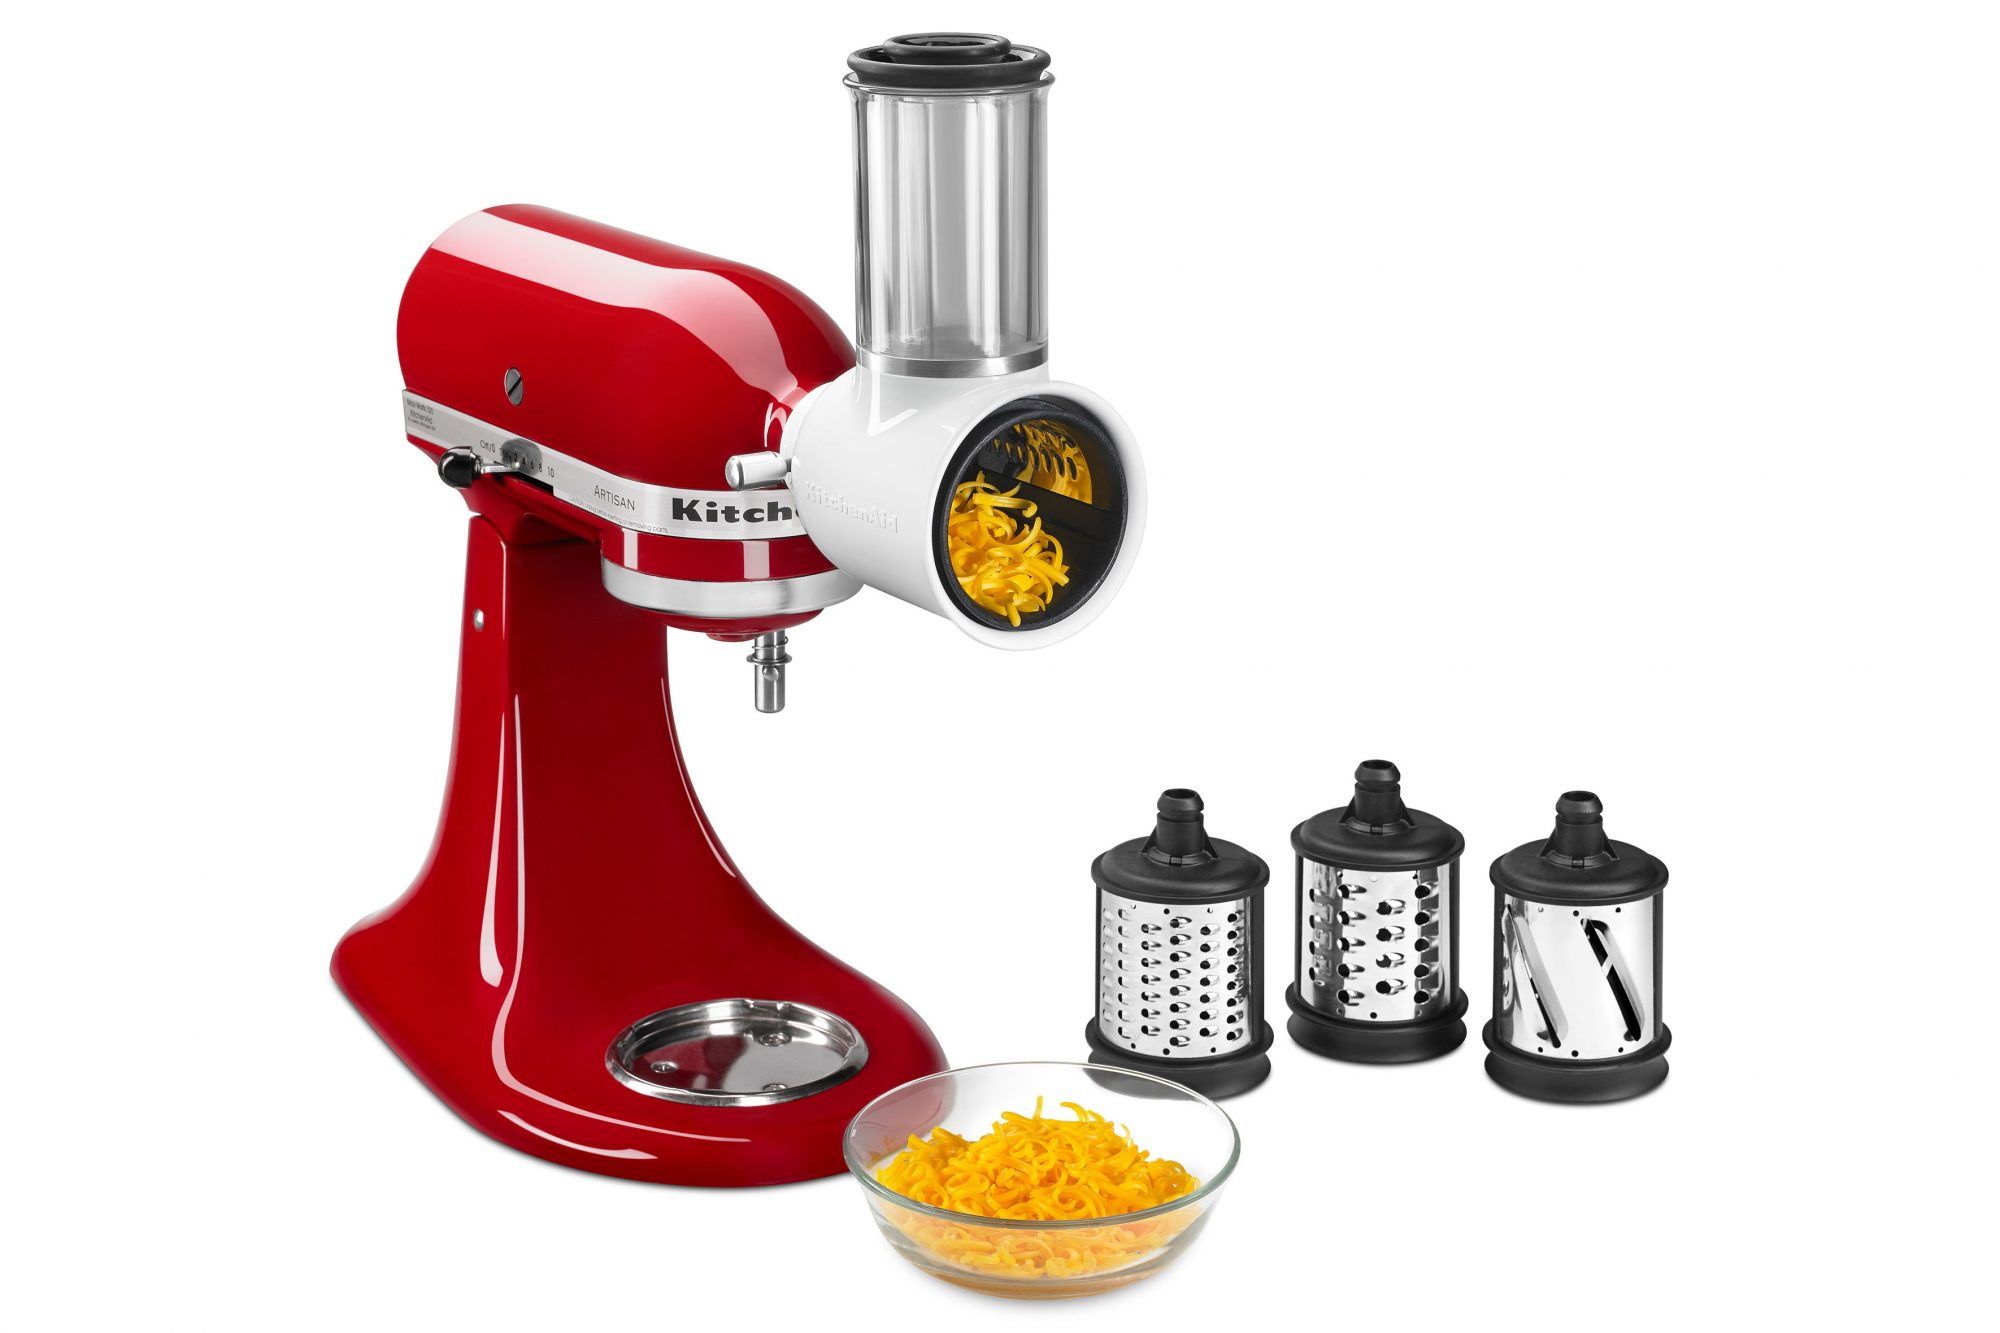 KitchenAid Stand Mixer in Red with Grating attachments and bowl of shredded grater cheese